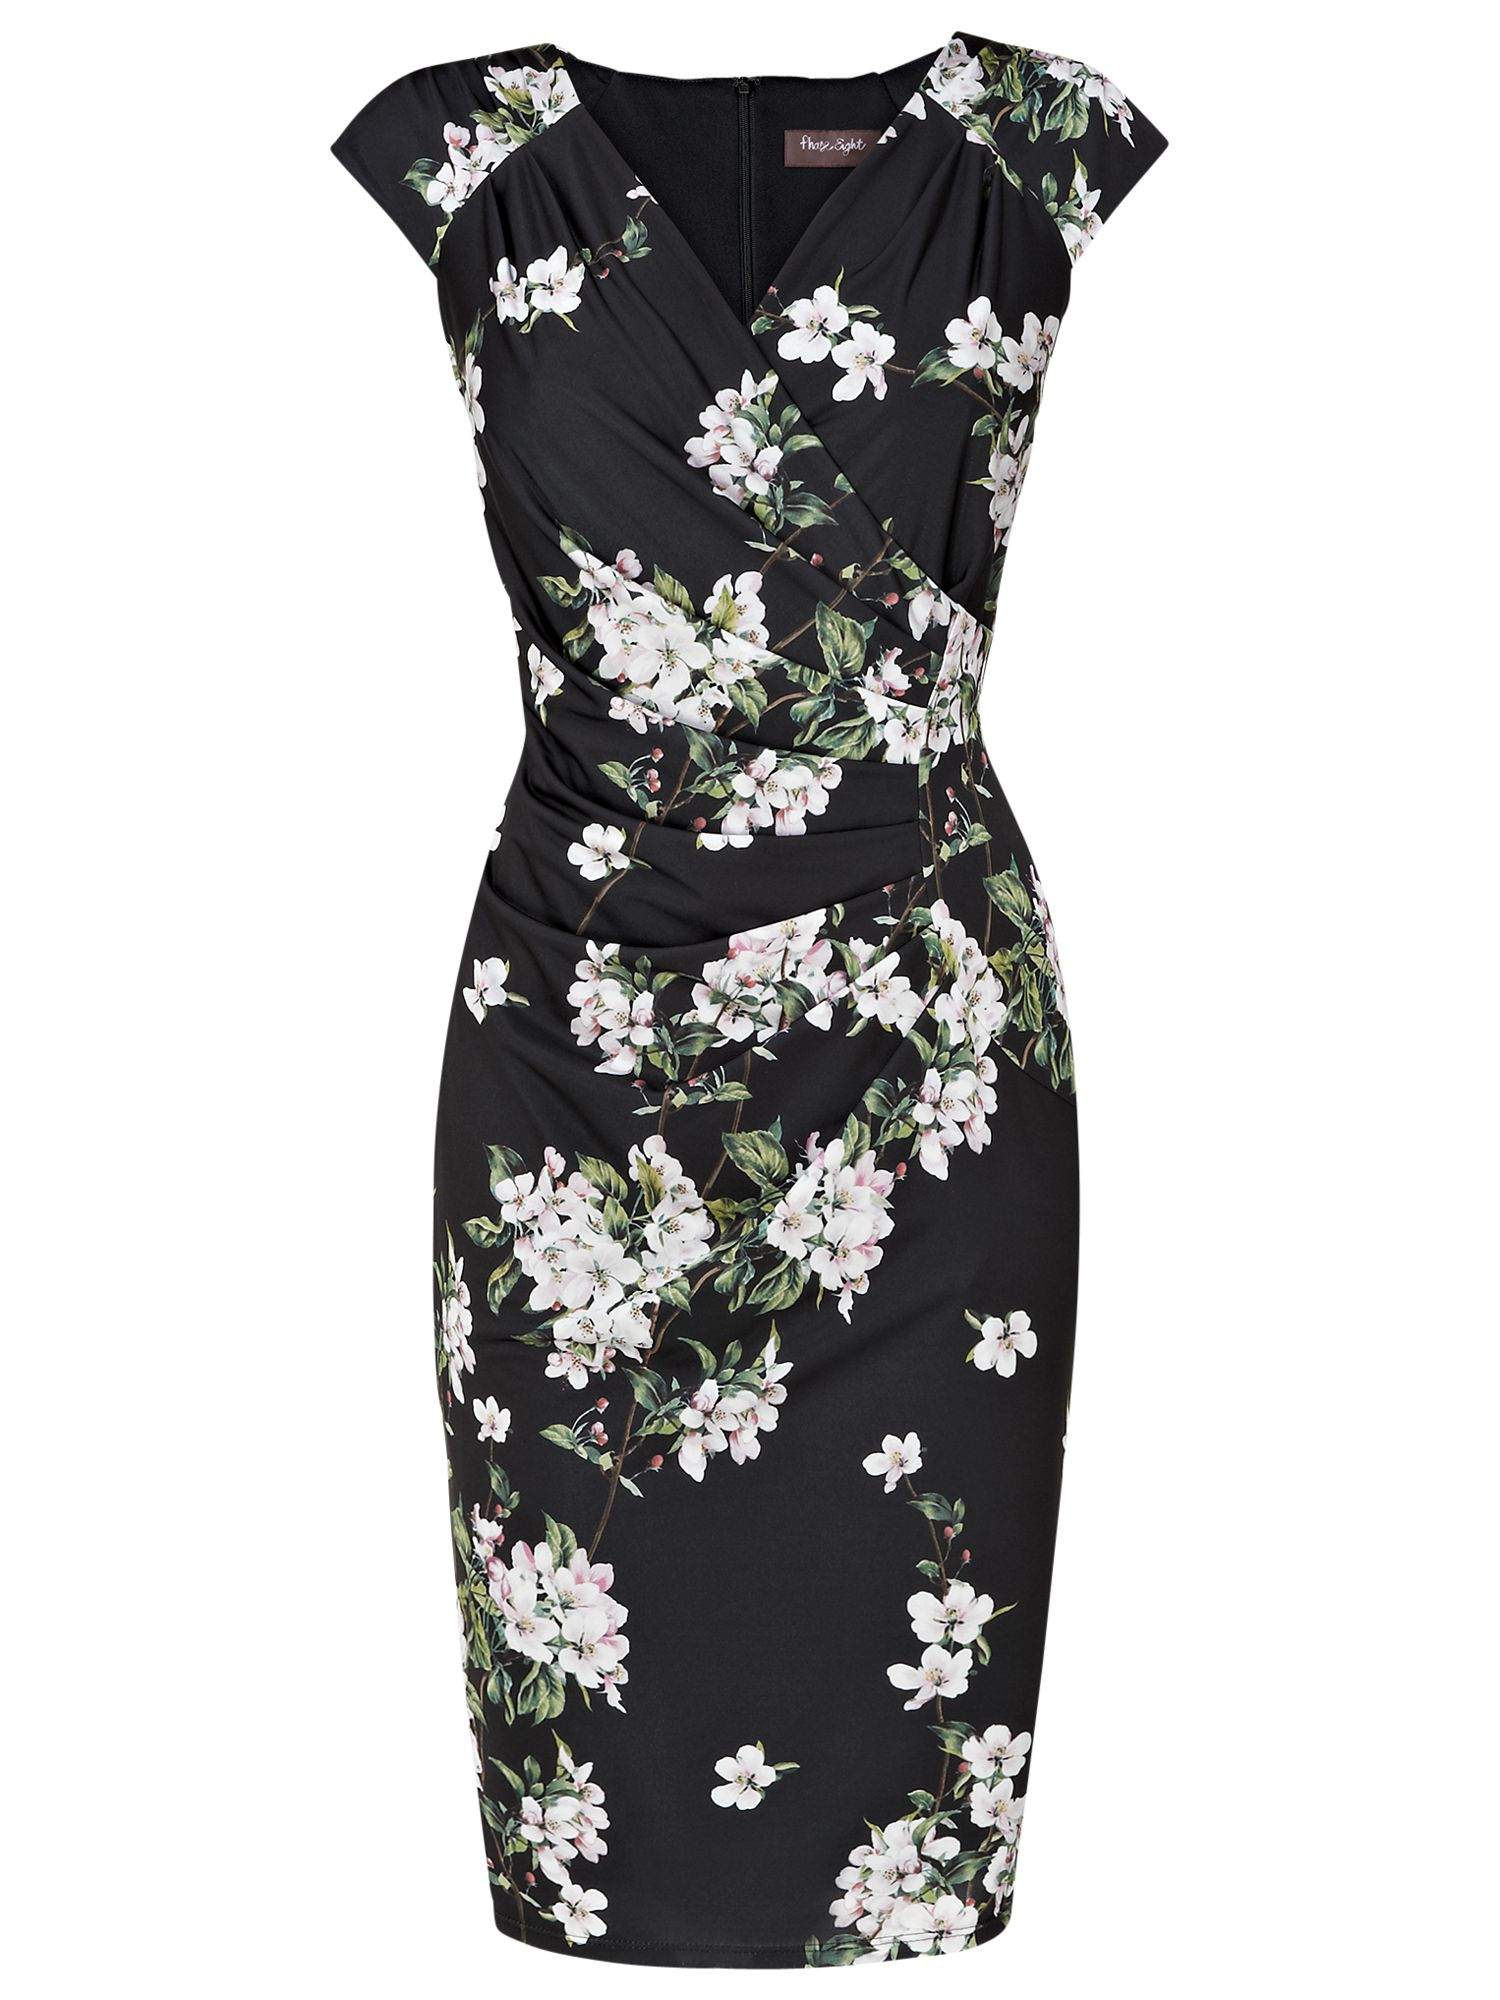 phase eight camille floral dress black/multi, phase, eight, camille, floral, dress, black/multi, phase eight, 10|8, clearance, womenswear offers, womens dresses offers, women, womens holiday shop, dresses, inactive womenswear, new reductions, womens dresses, special offers, fashion magazine, brands l-z, 1537657